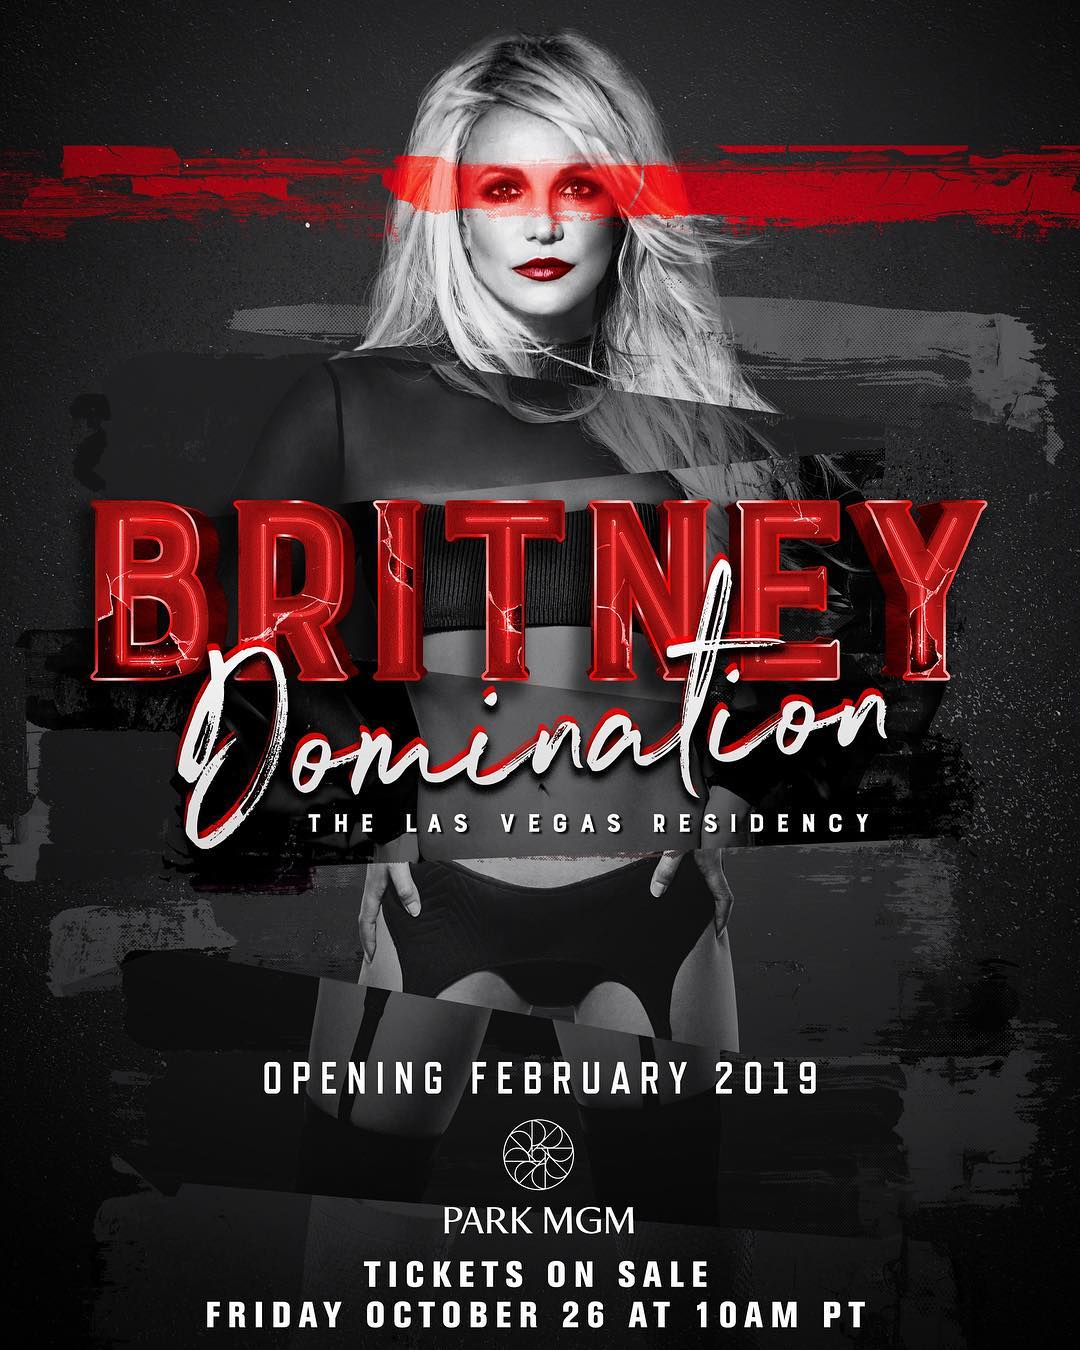 Britney Spears Domination Las Vegas